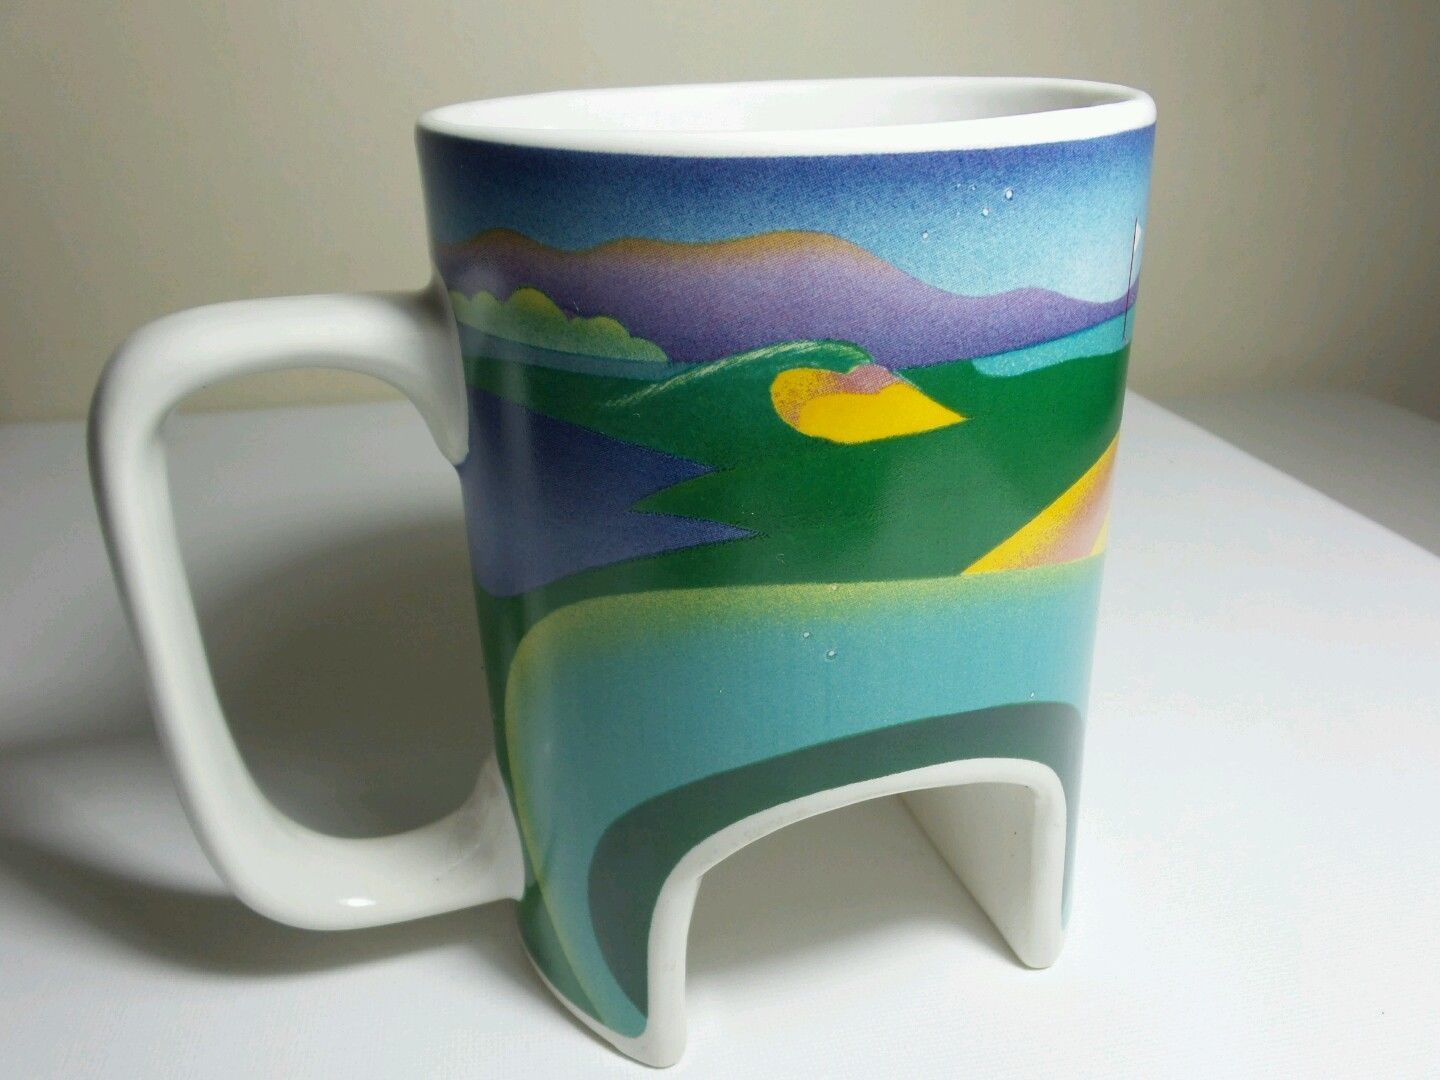 Vintage Golf Practice Putting Hole Mug - 1990 Norrgard Designs